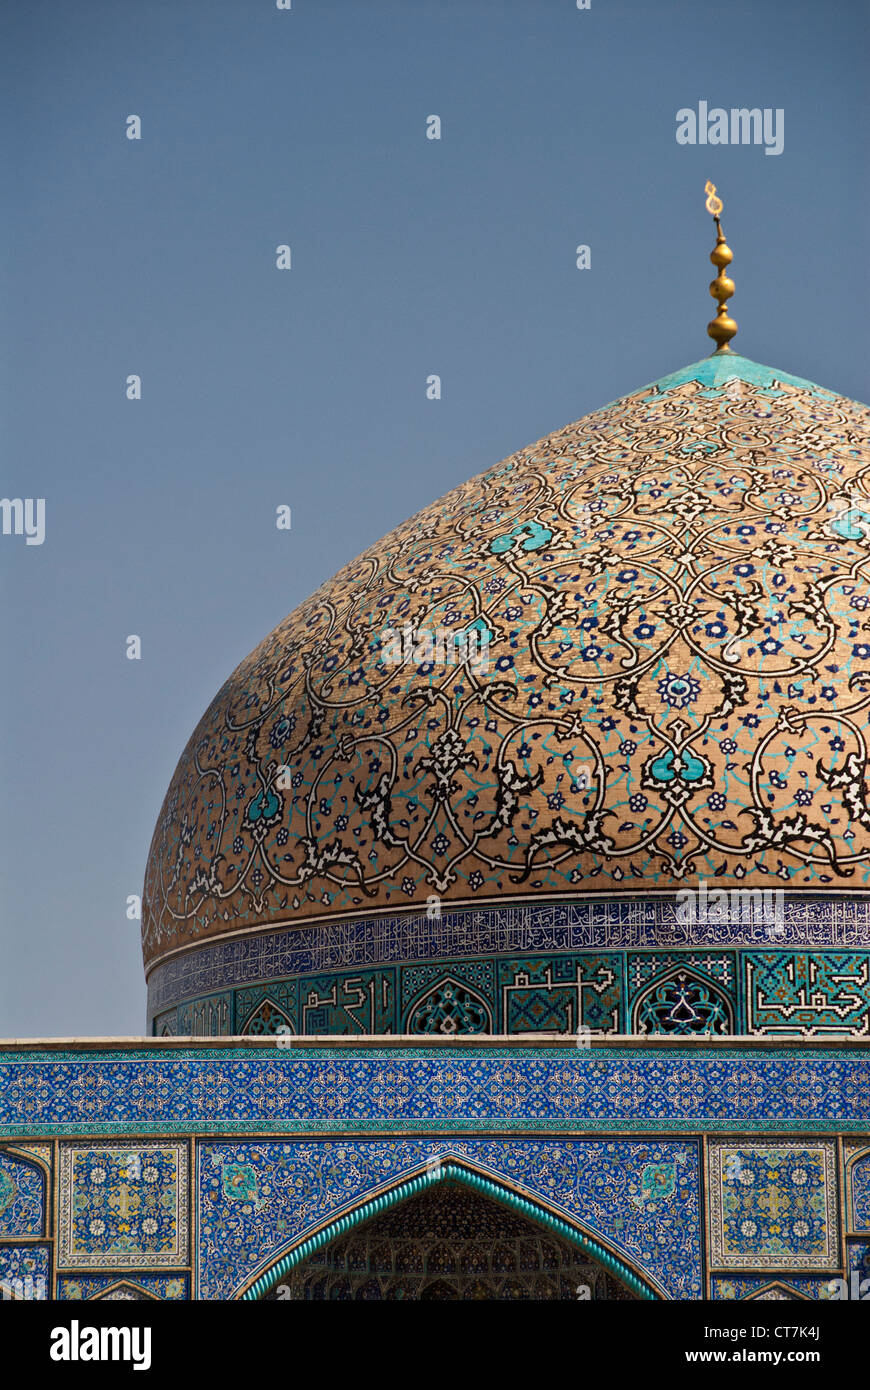 dome of the Masjid-i Sheikh Lotfallah Mosque is Esfahan, Iran - Stock Image